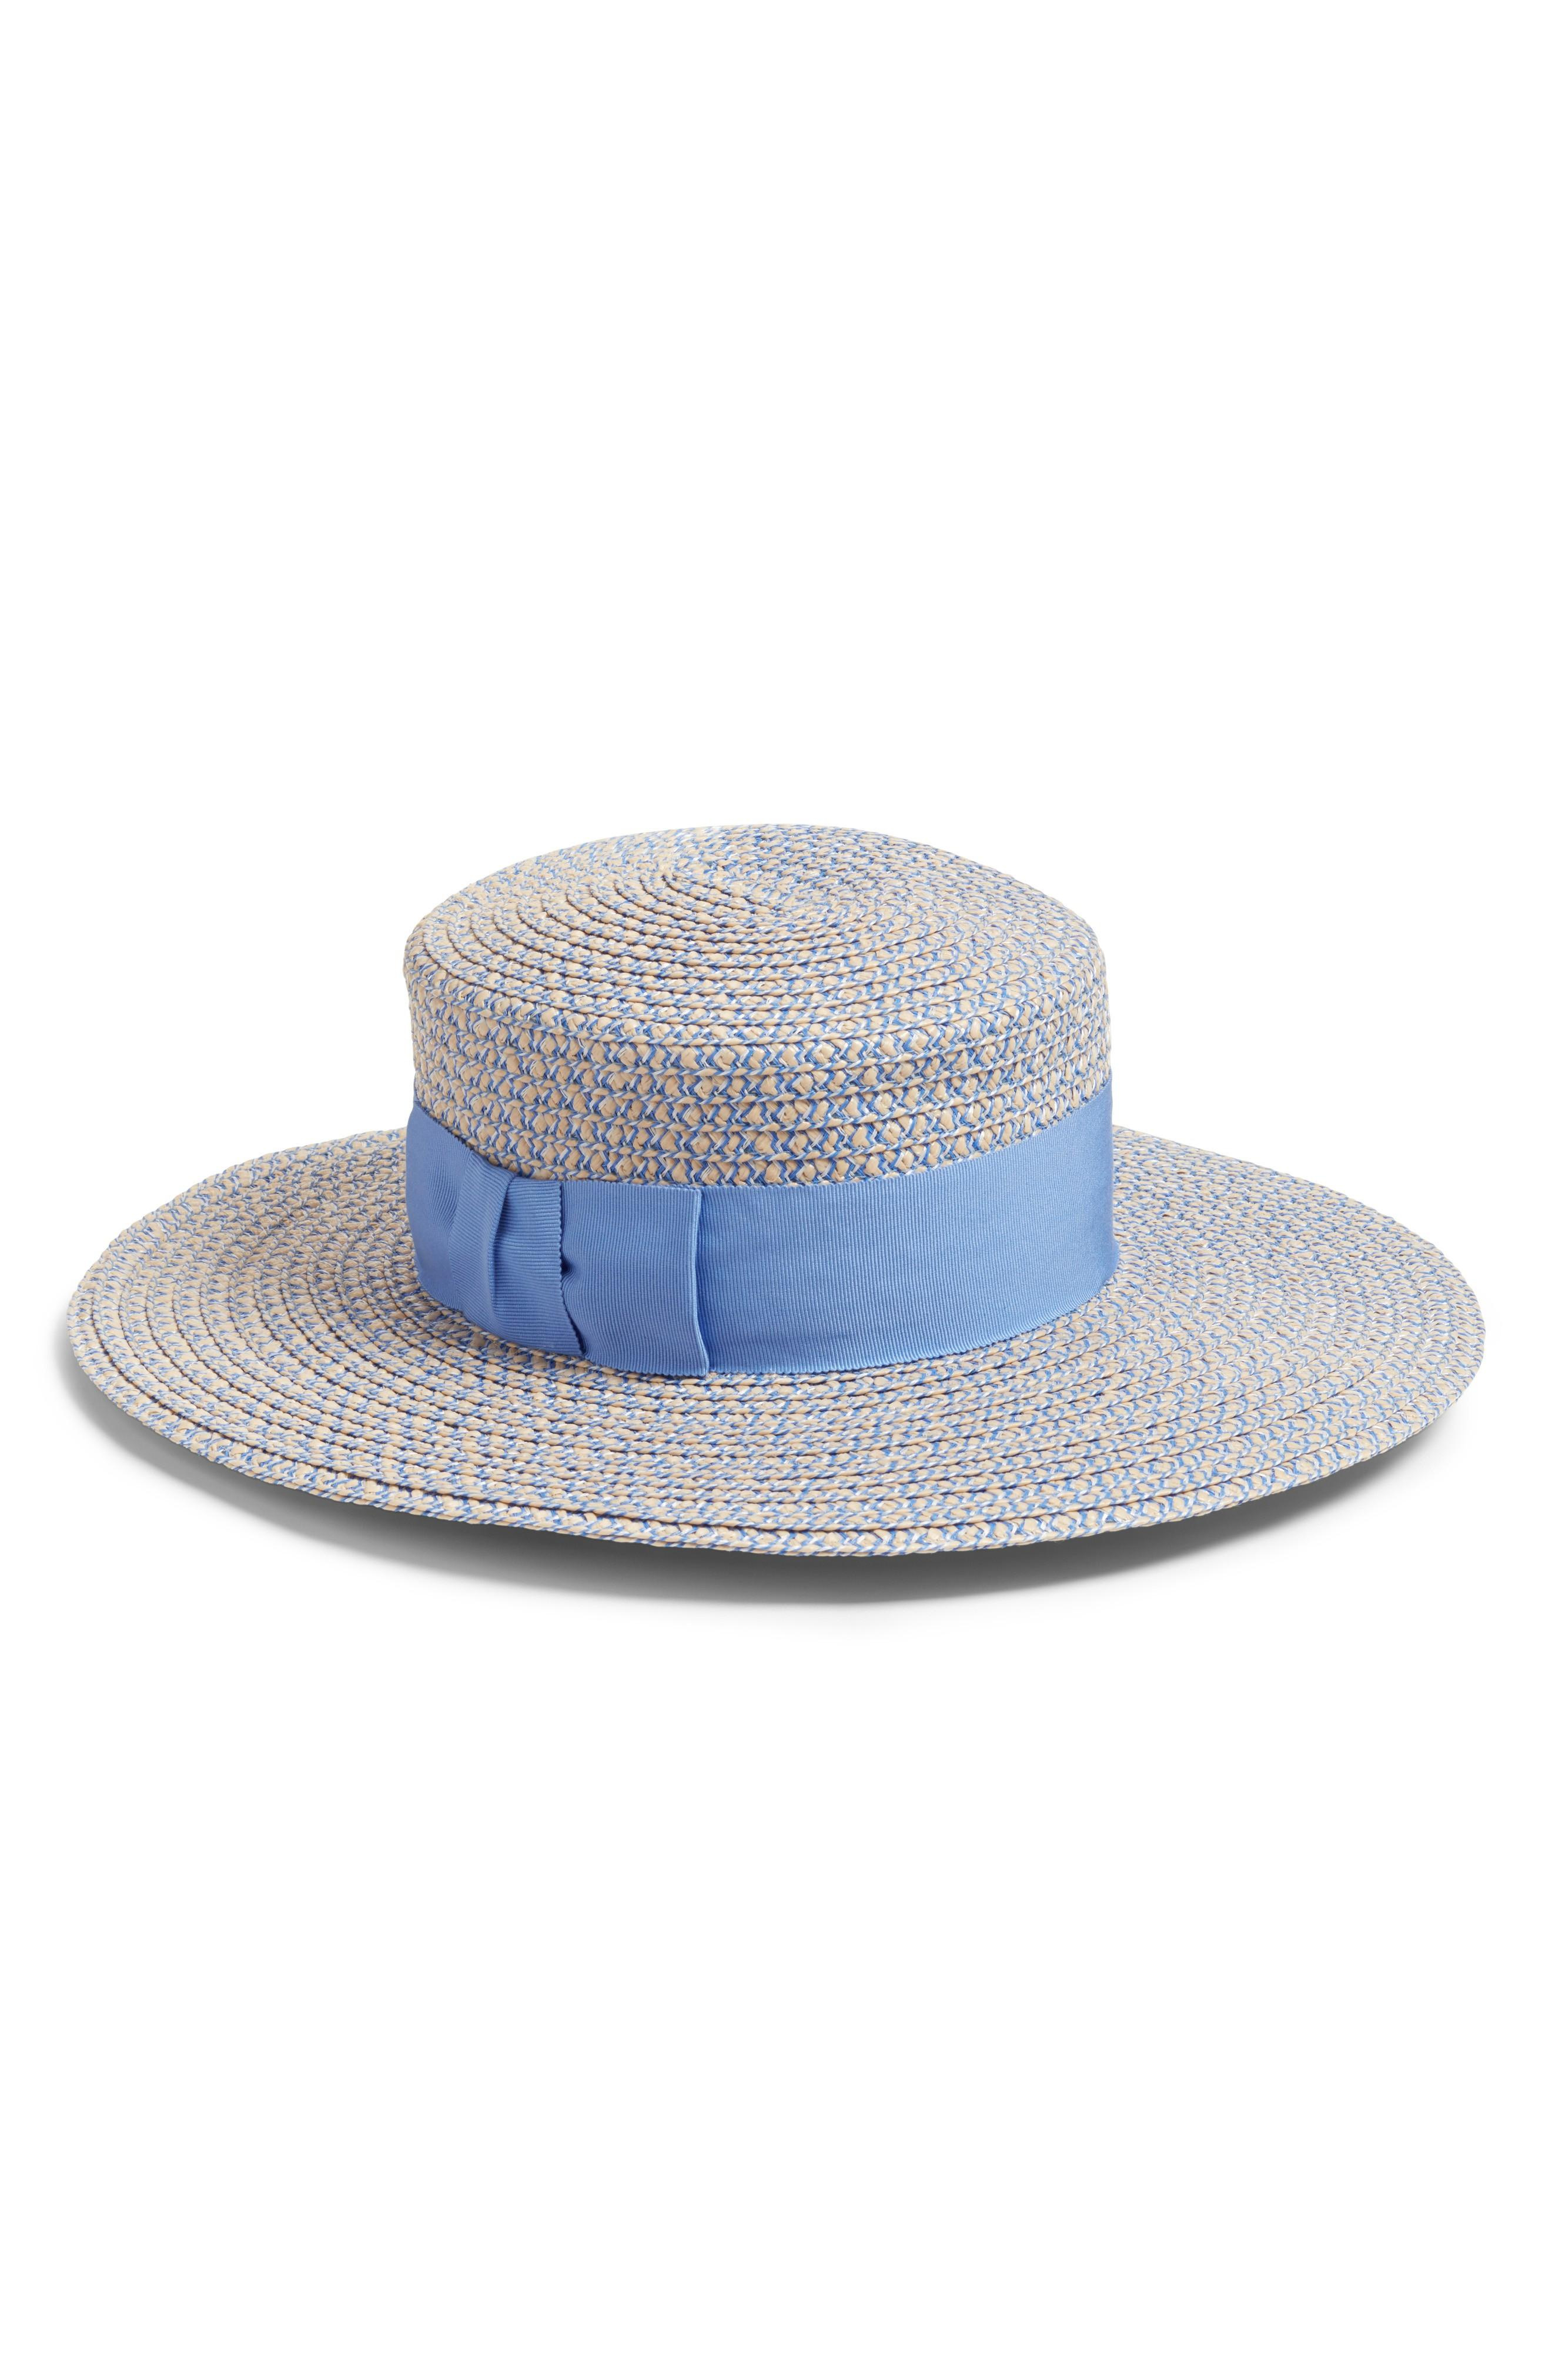 1a1076223a17b Eric Javits  Gondolier  Boater Hat - Blue In Cream  Blue Tweed ...